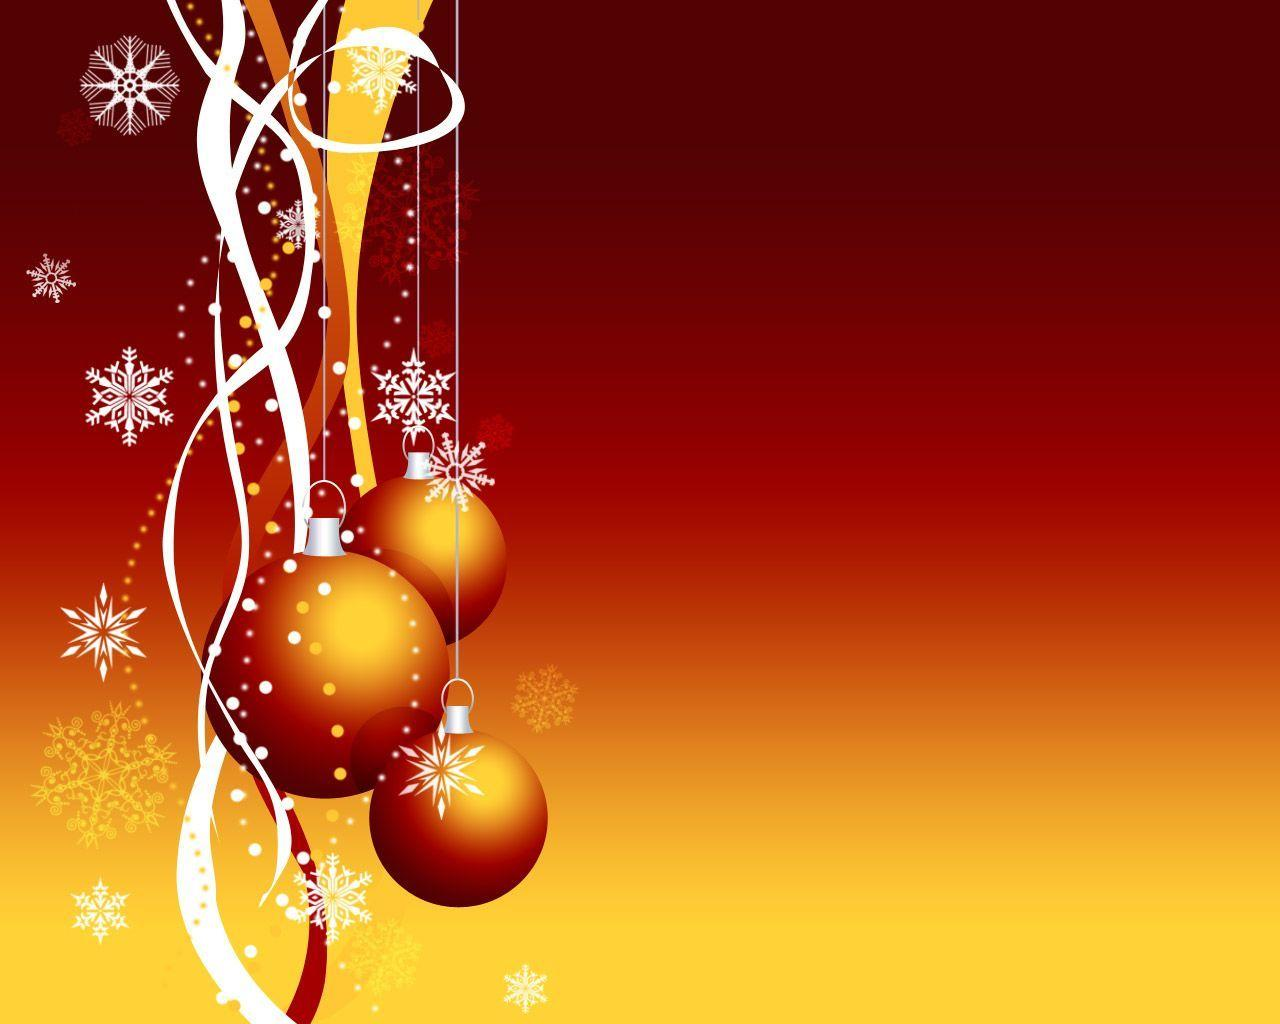 free wallpaper holidays - photo #14